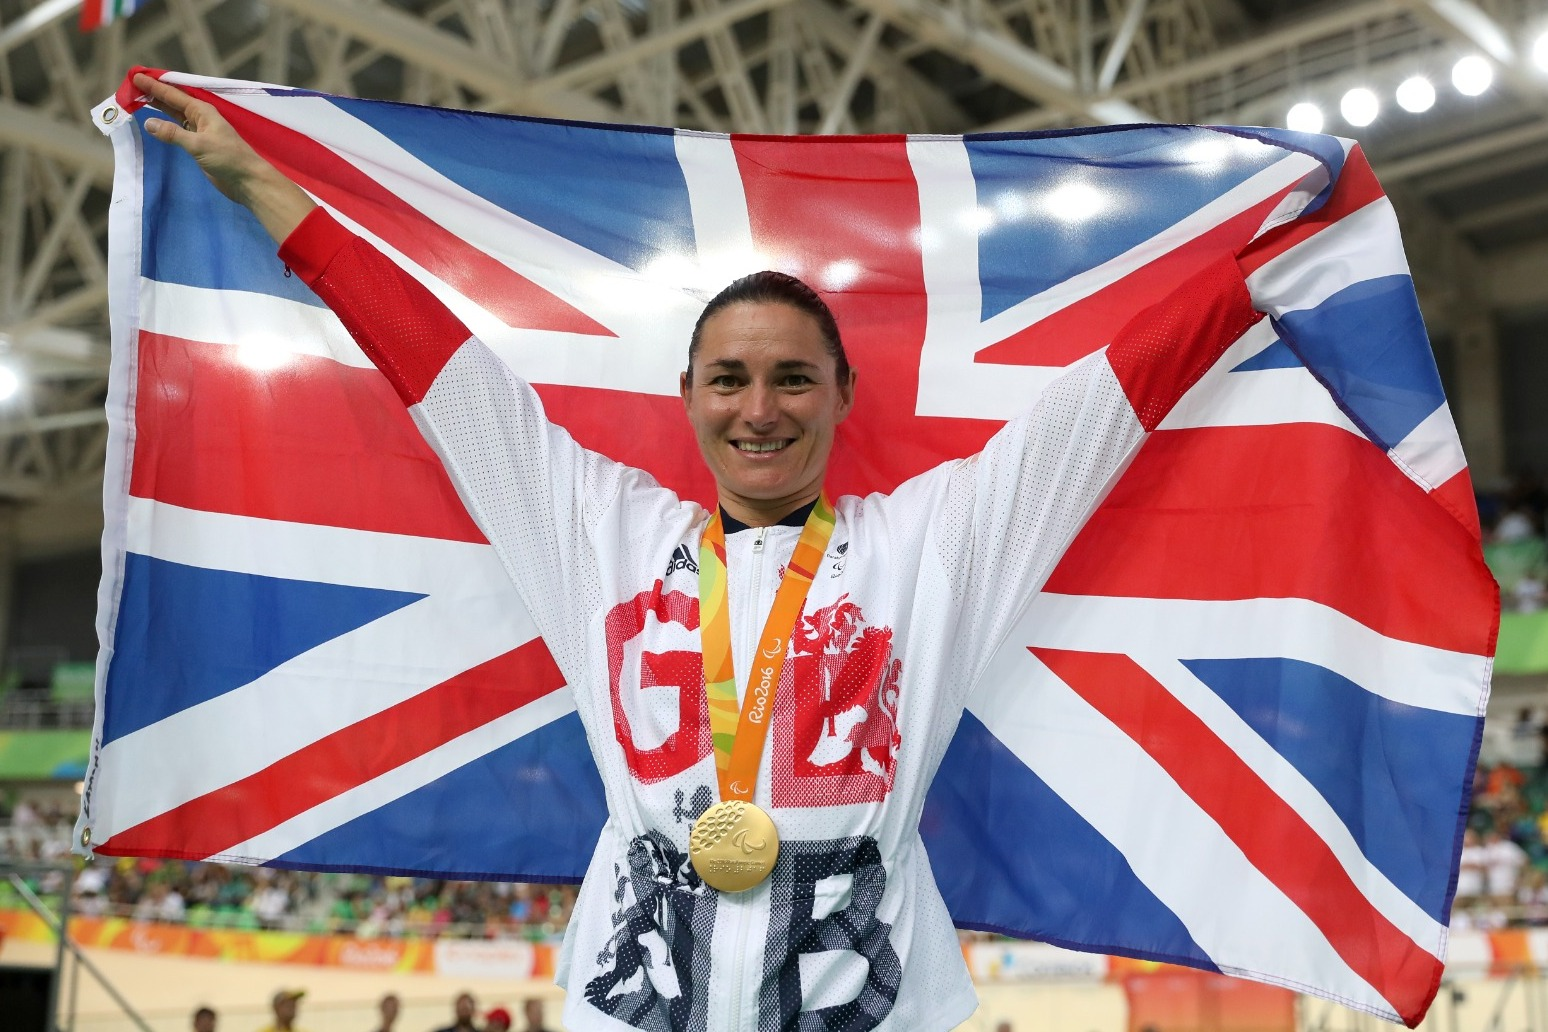 Sarah Storey excited by chance to become Britain's most successful Paralympian